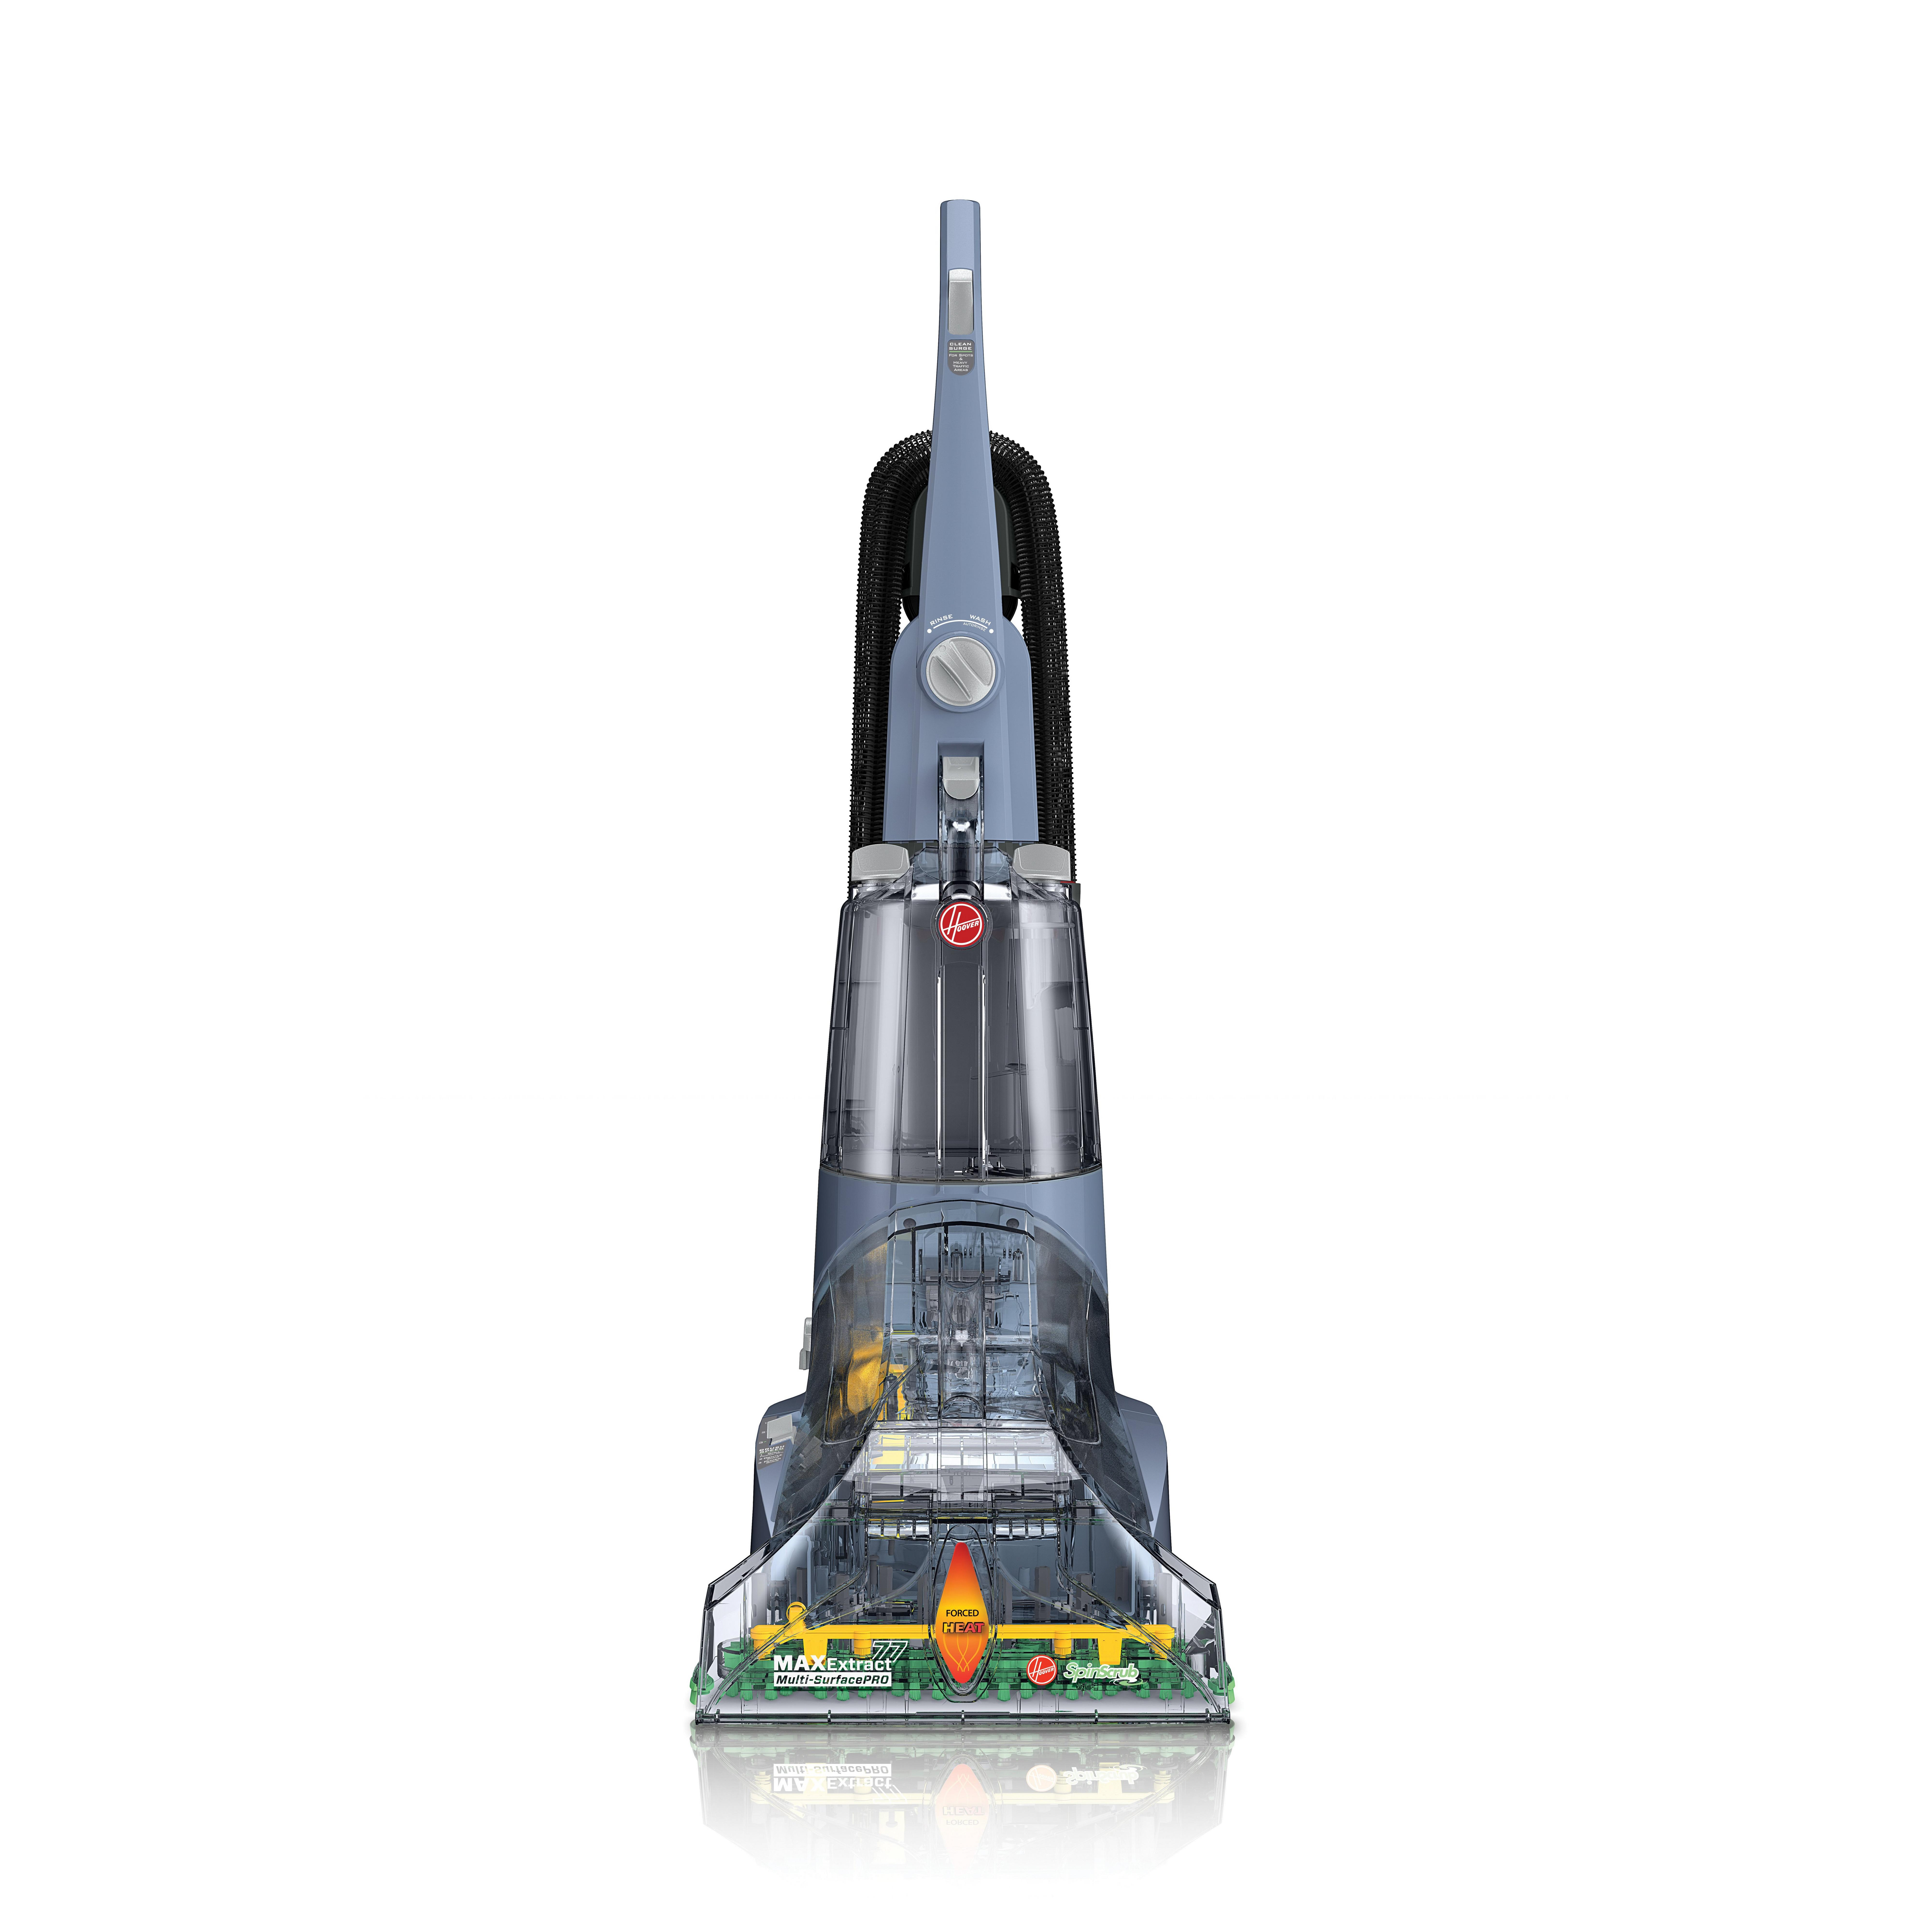 Max Extract 77 Multi-Surface Pro Carpet & Hard Floor Cleaner